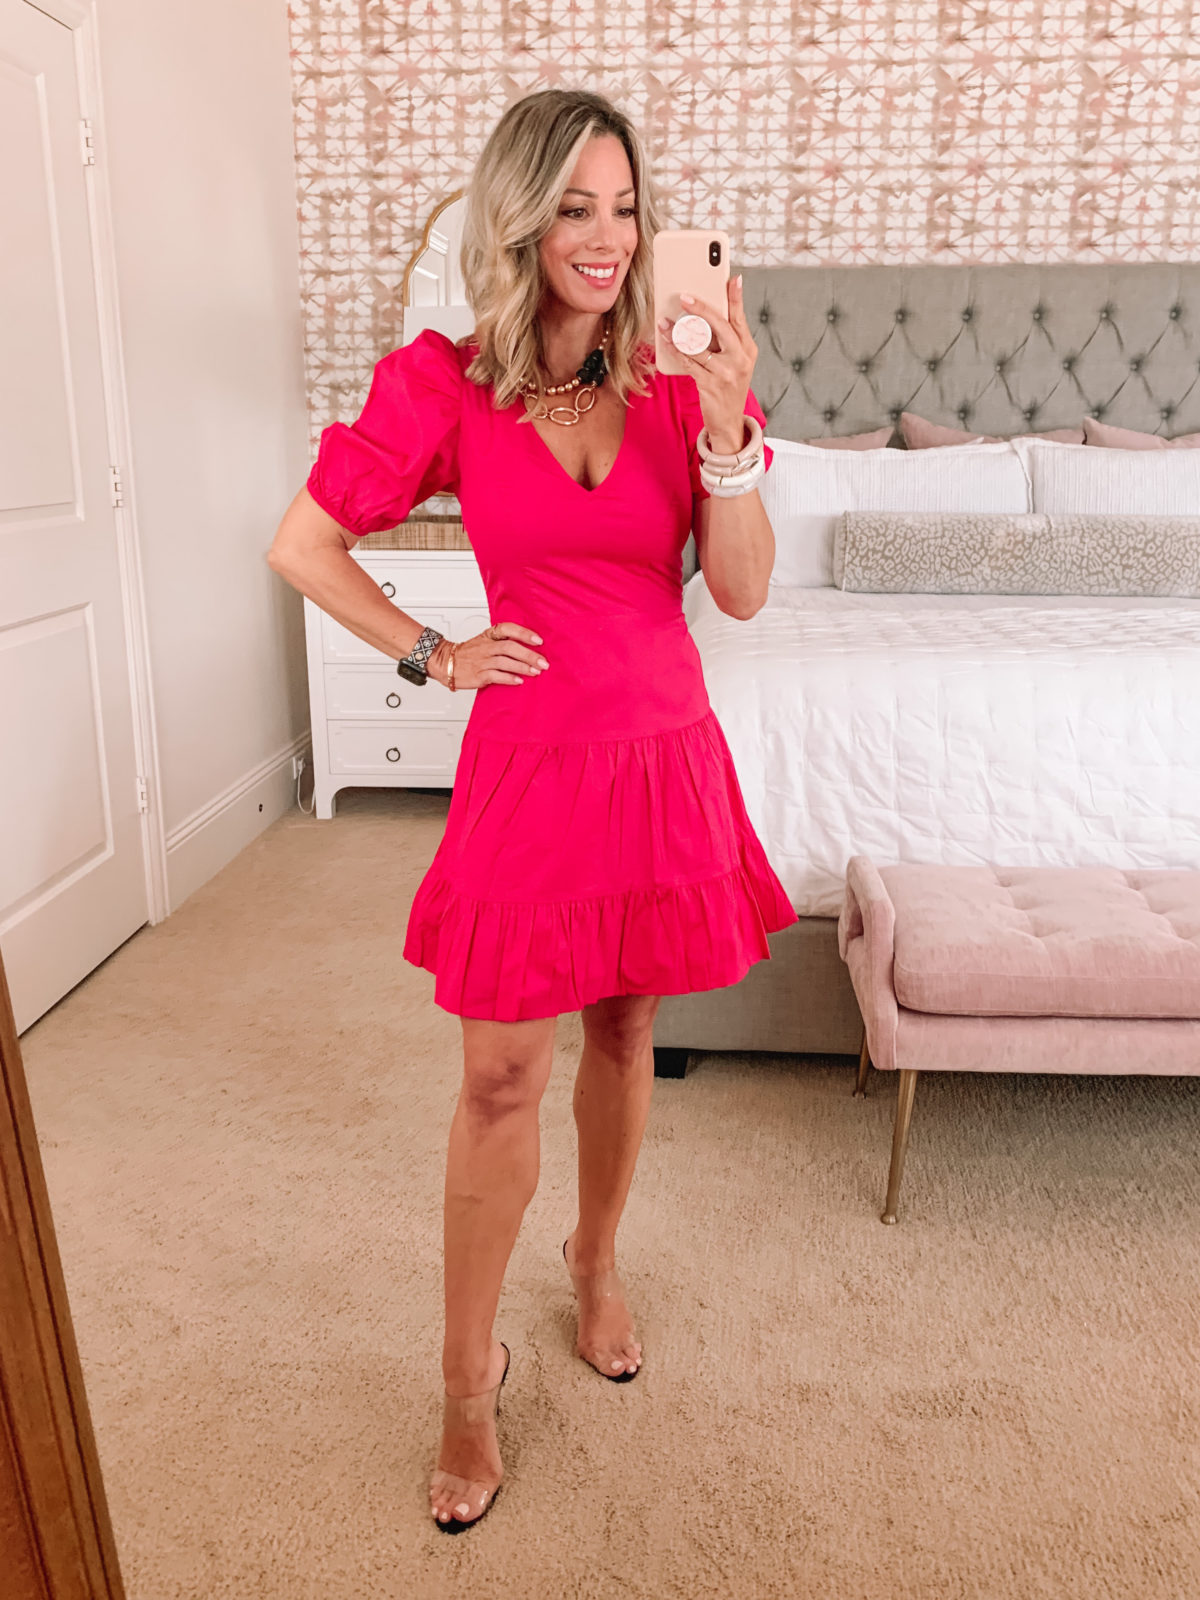 Dressing Room Finds, Pink Mini Dress with Puff Sleeves and Clear Sandals